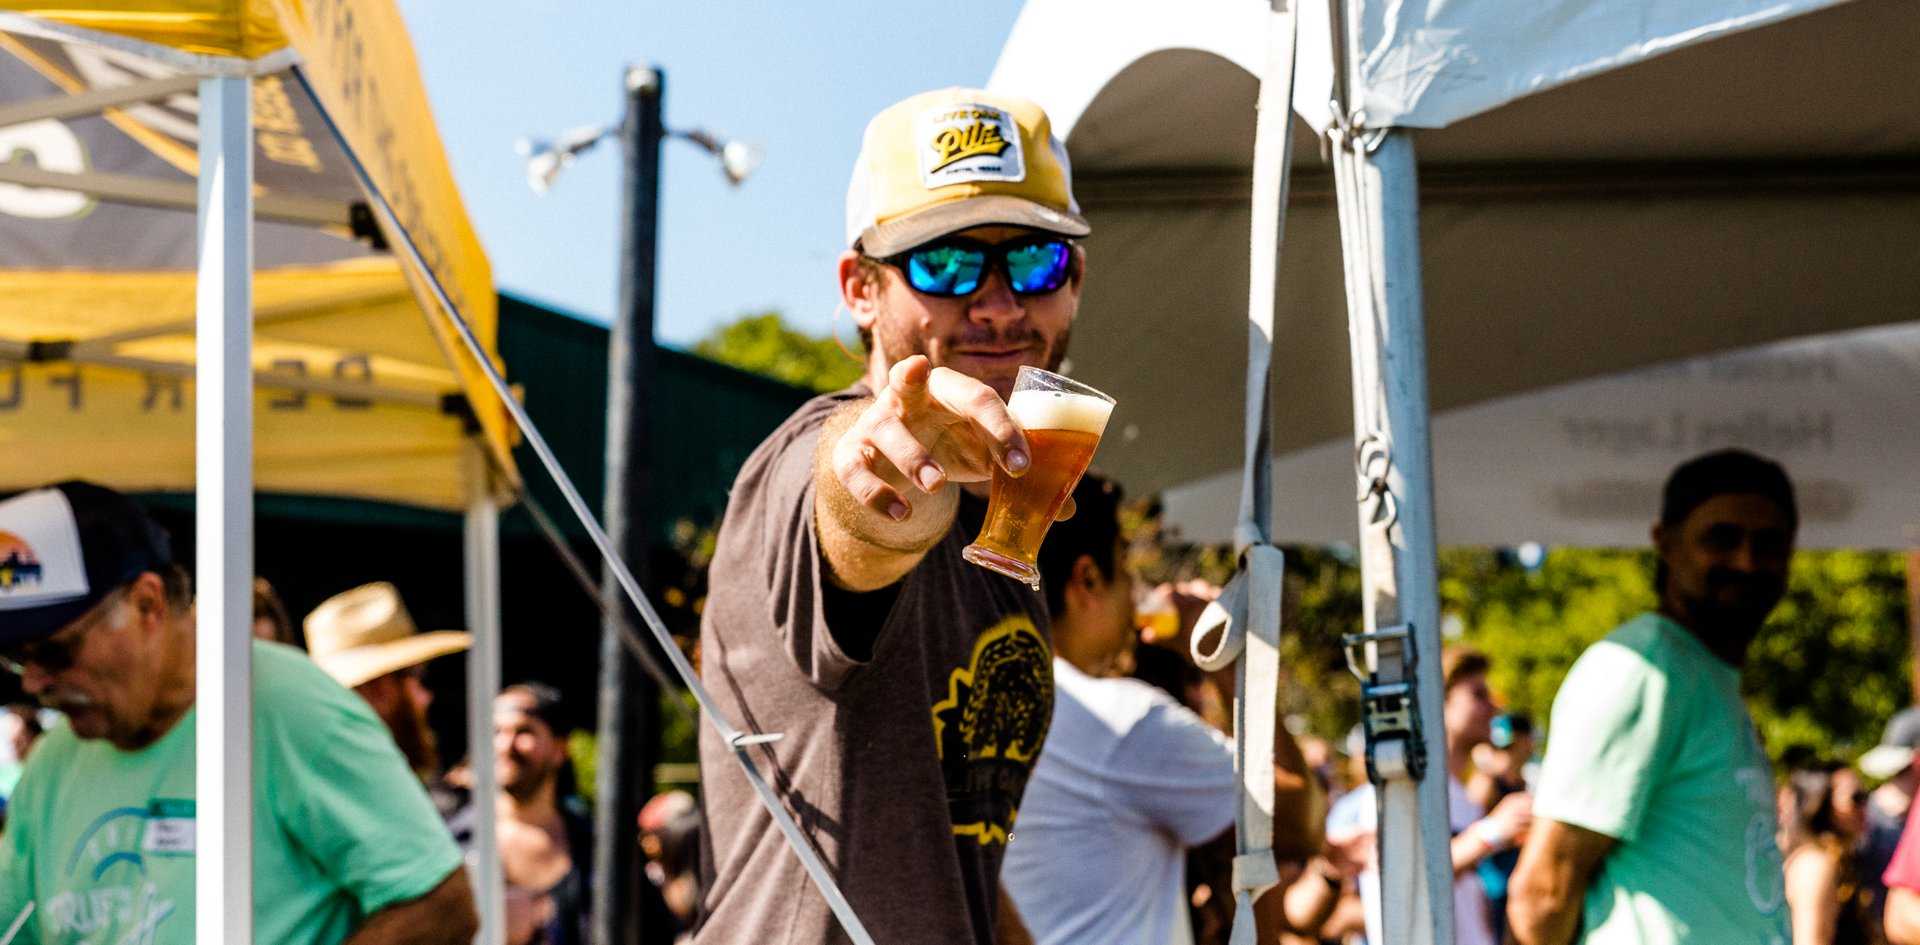 Texas Craft Brewers Festival in Texas - Best Season 2020